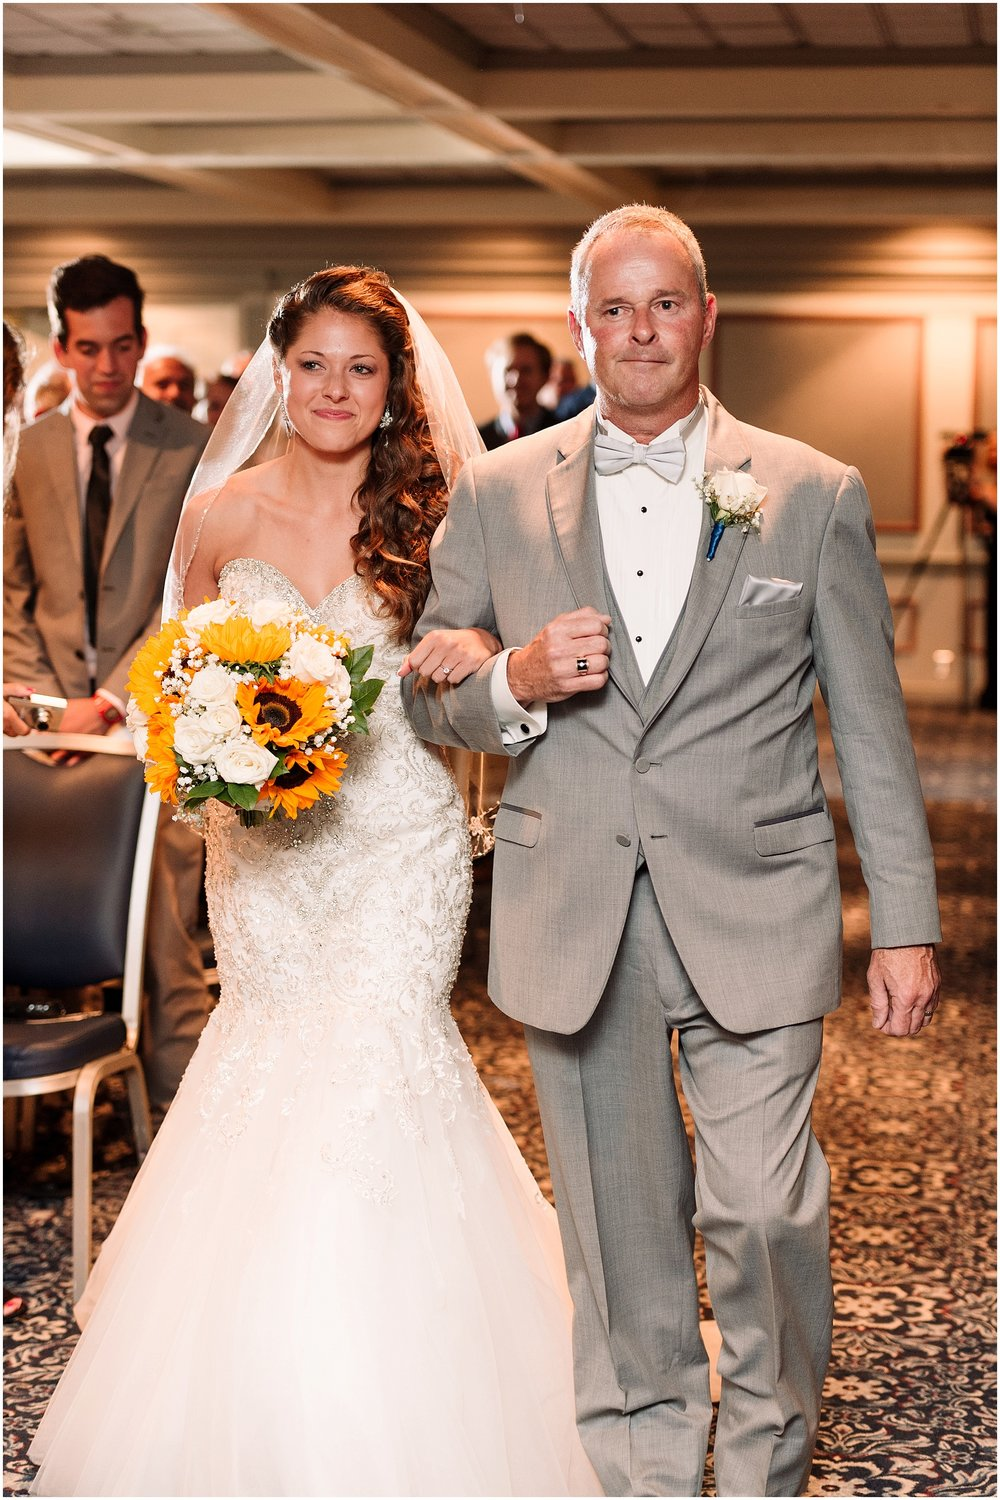 Hannah Leigh Photography Nittany Lion Inn Wedding State College PA_5002.jpg